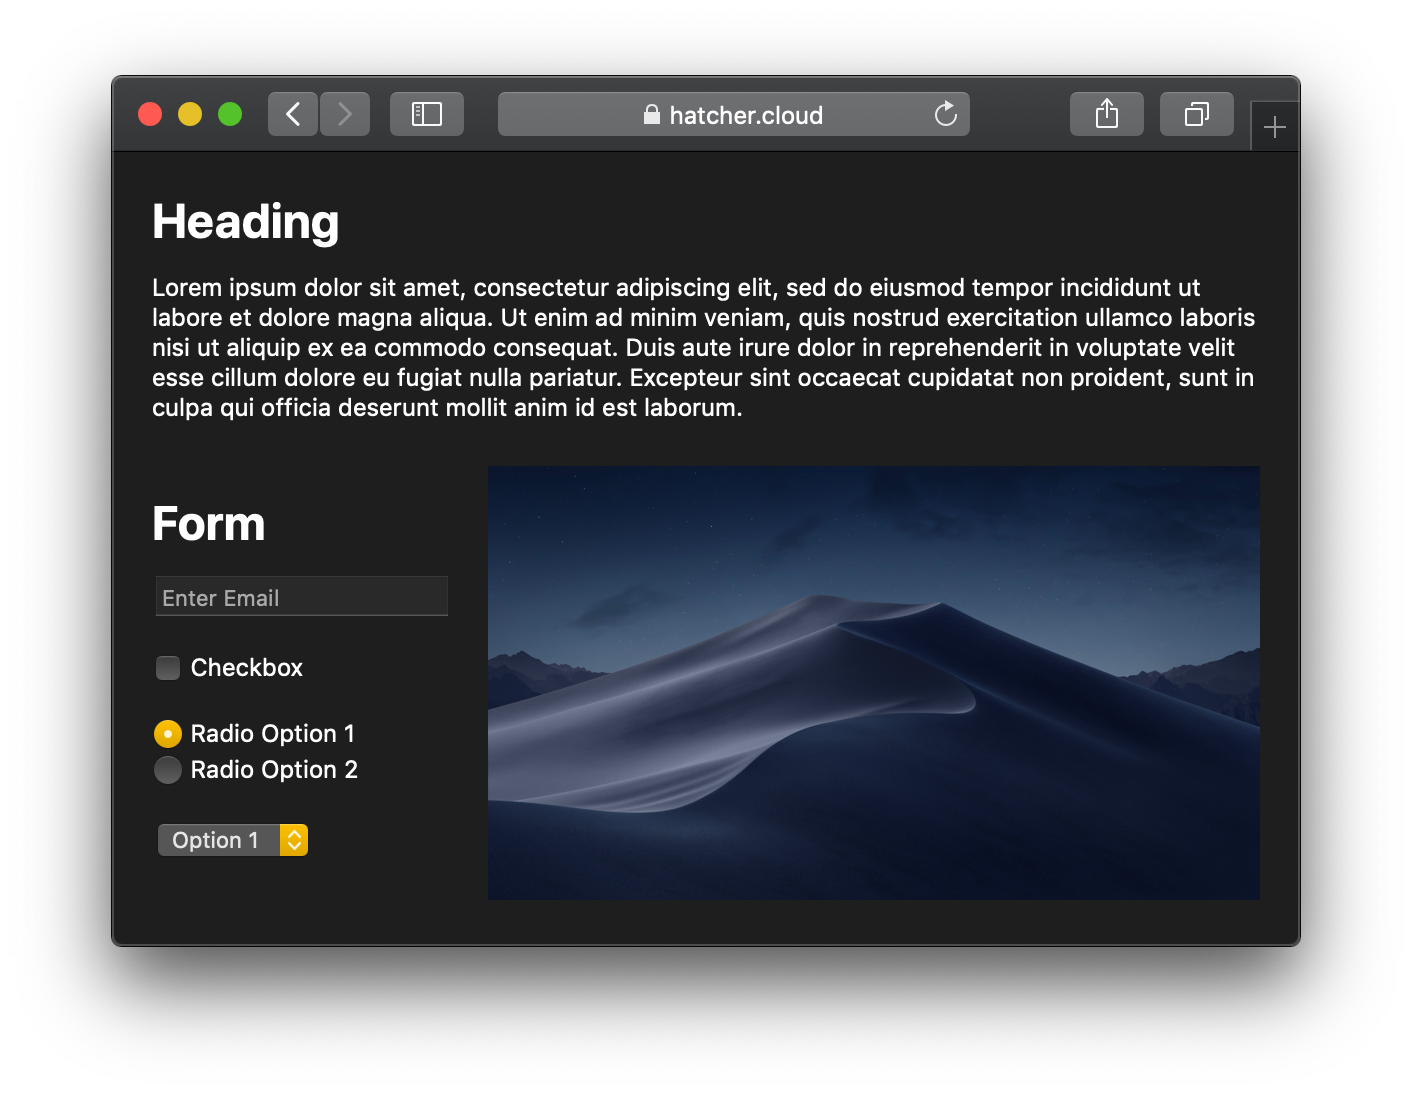 Example page in dark mode